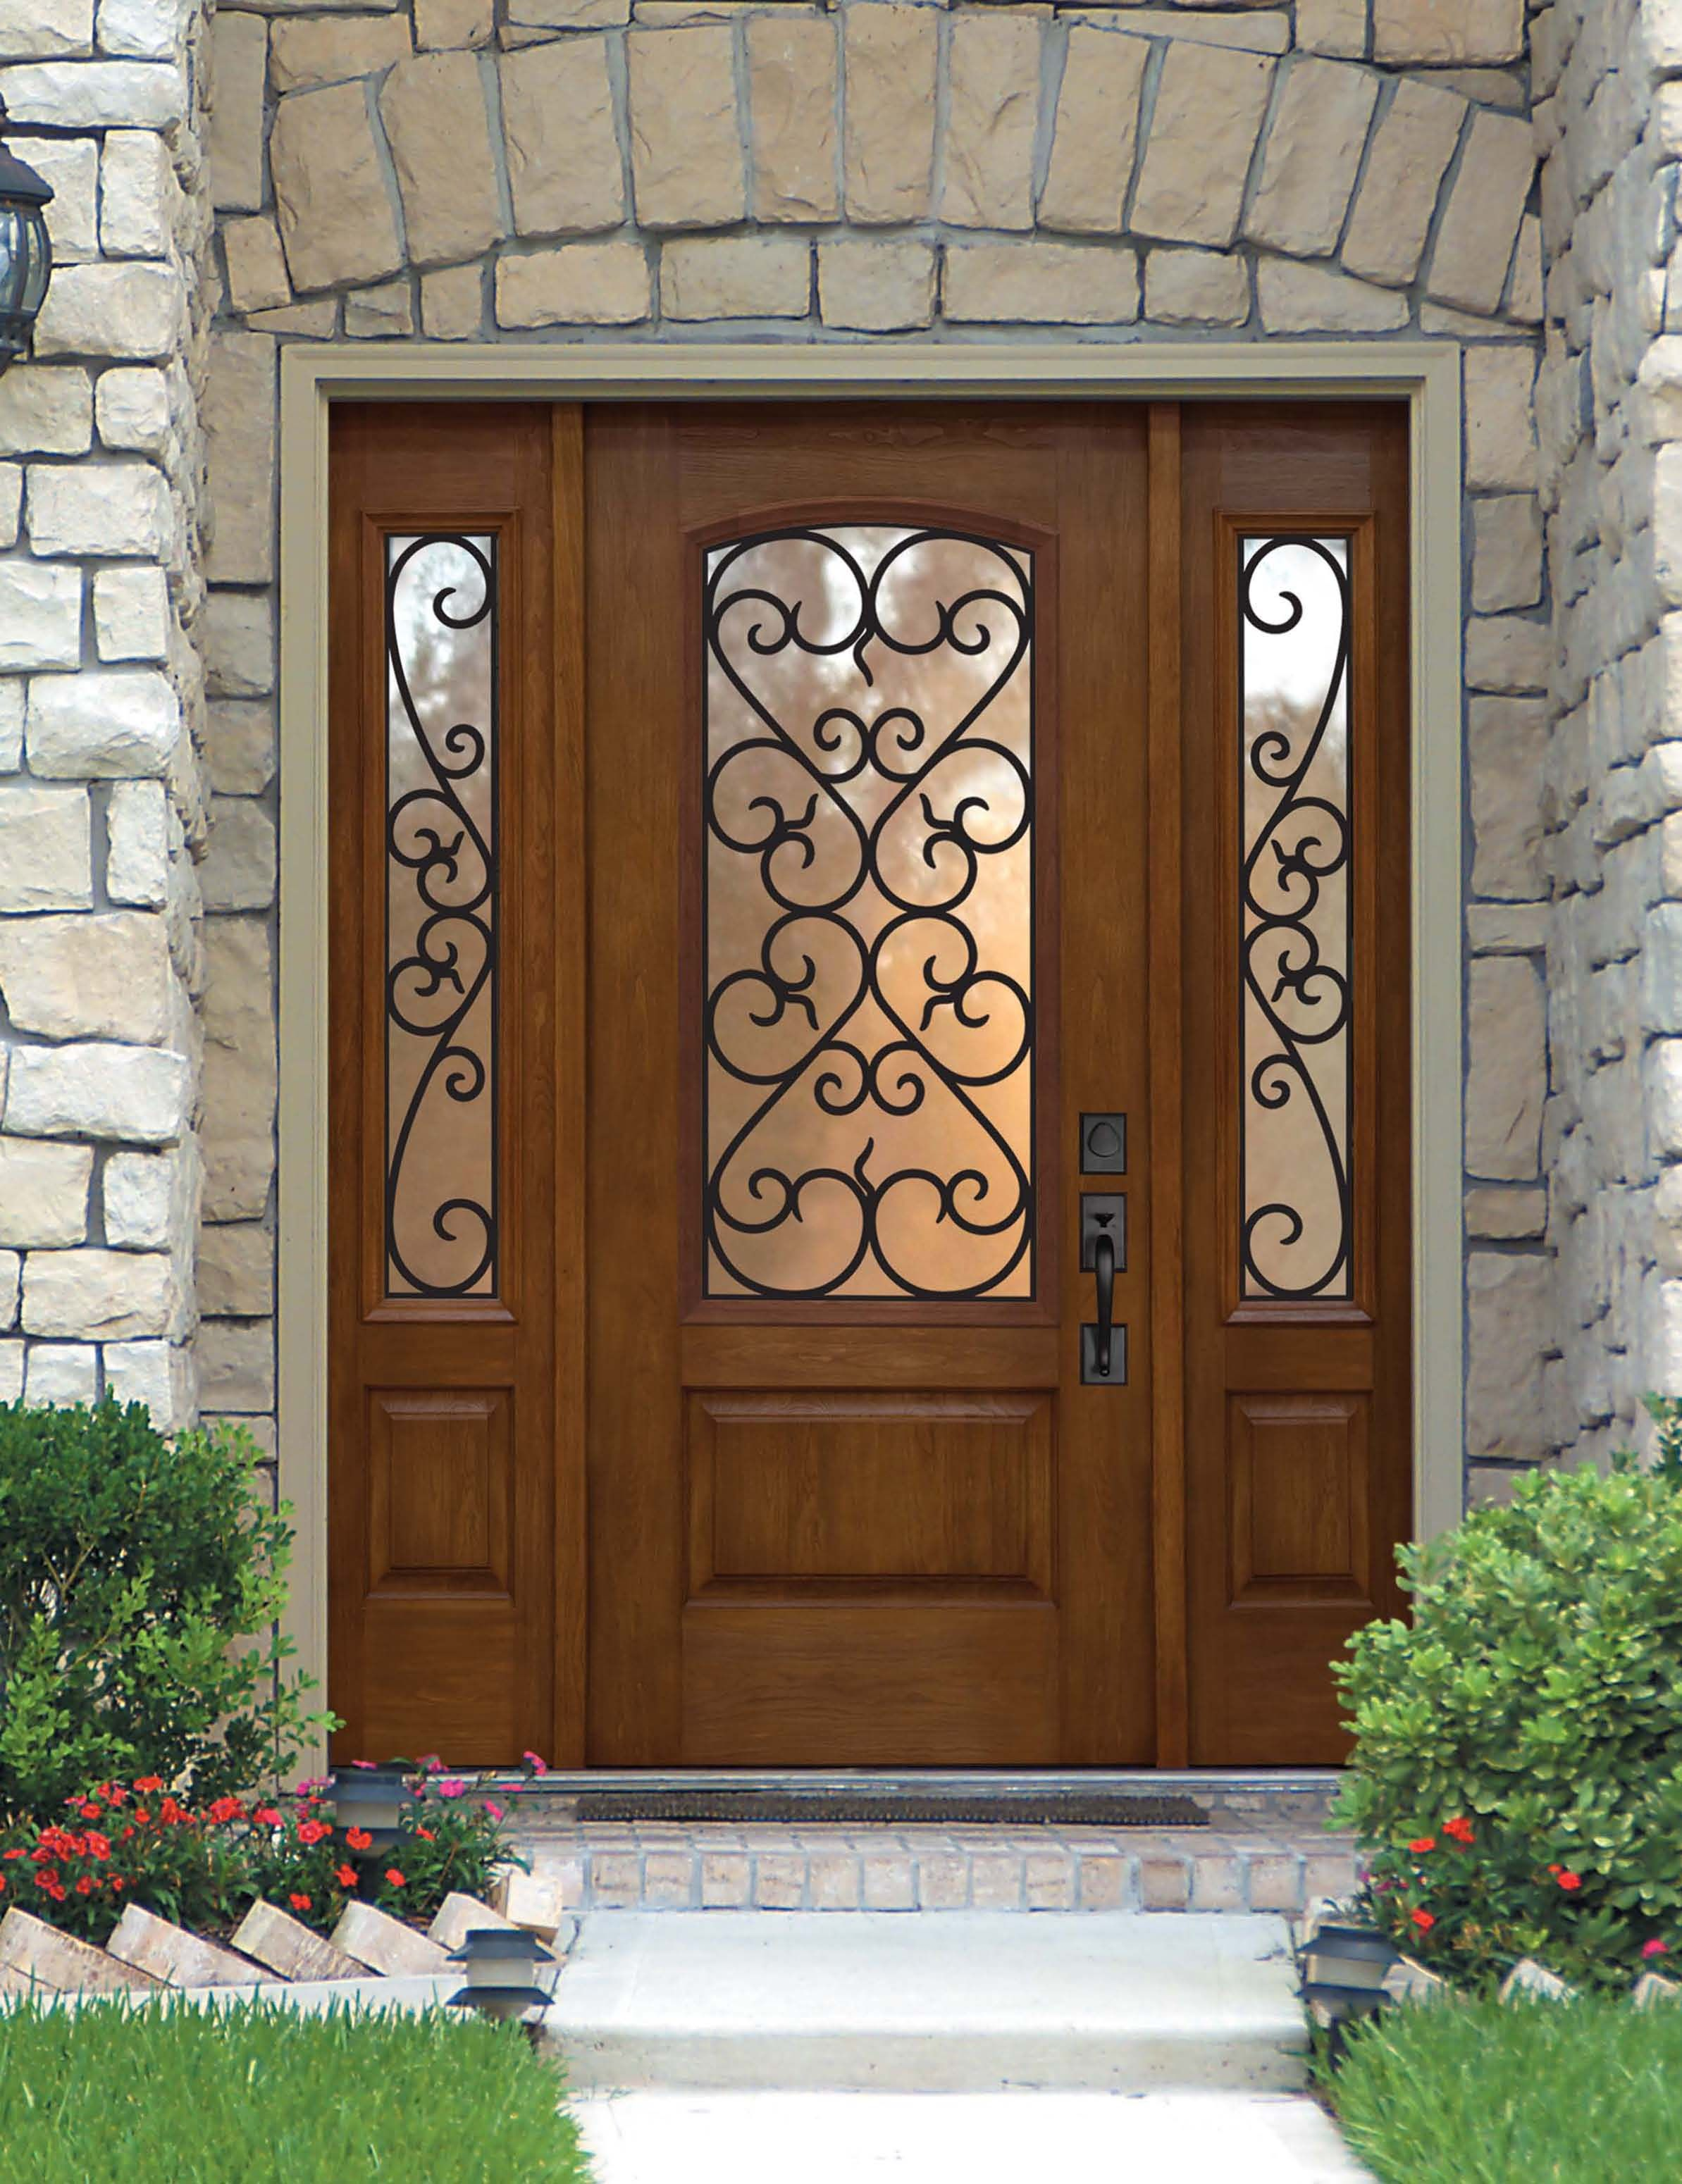 Palermo Fibergl Door Prehung Tempered Gl Double Glazed Arch Lite 1 Panel Exterior Sidelites Gbg Iron With 80 Tall